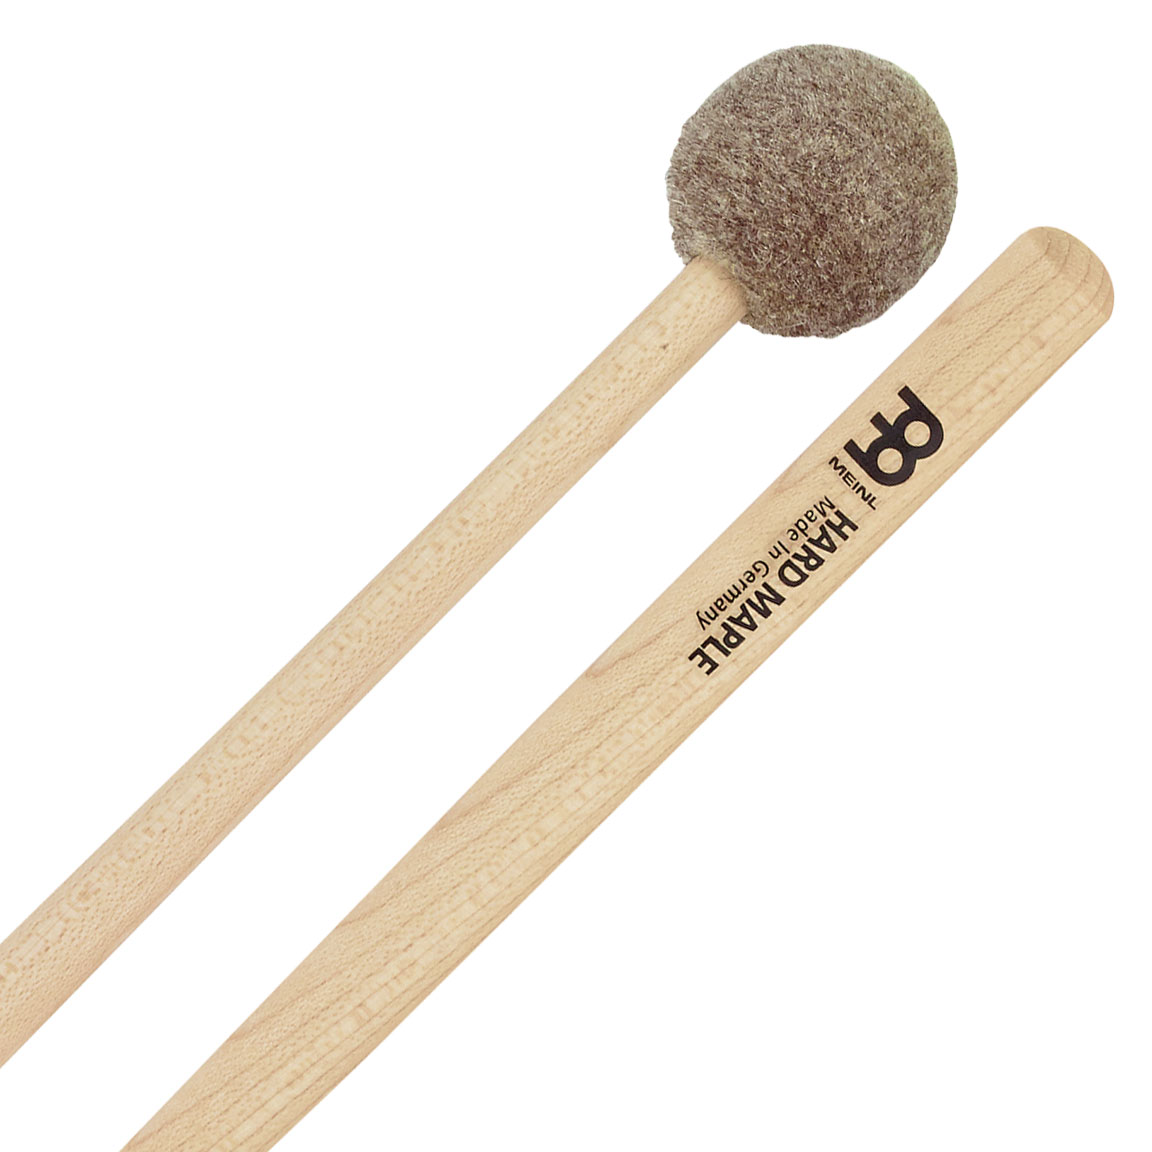 Meinl Small Hard Felt Percussion Mallets